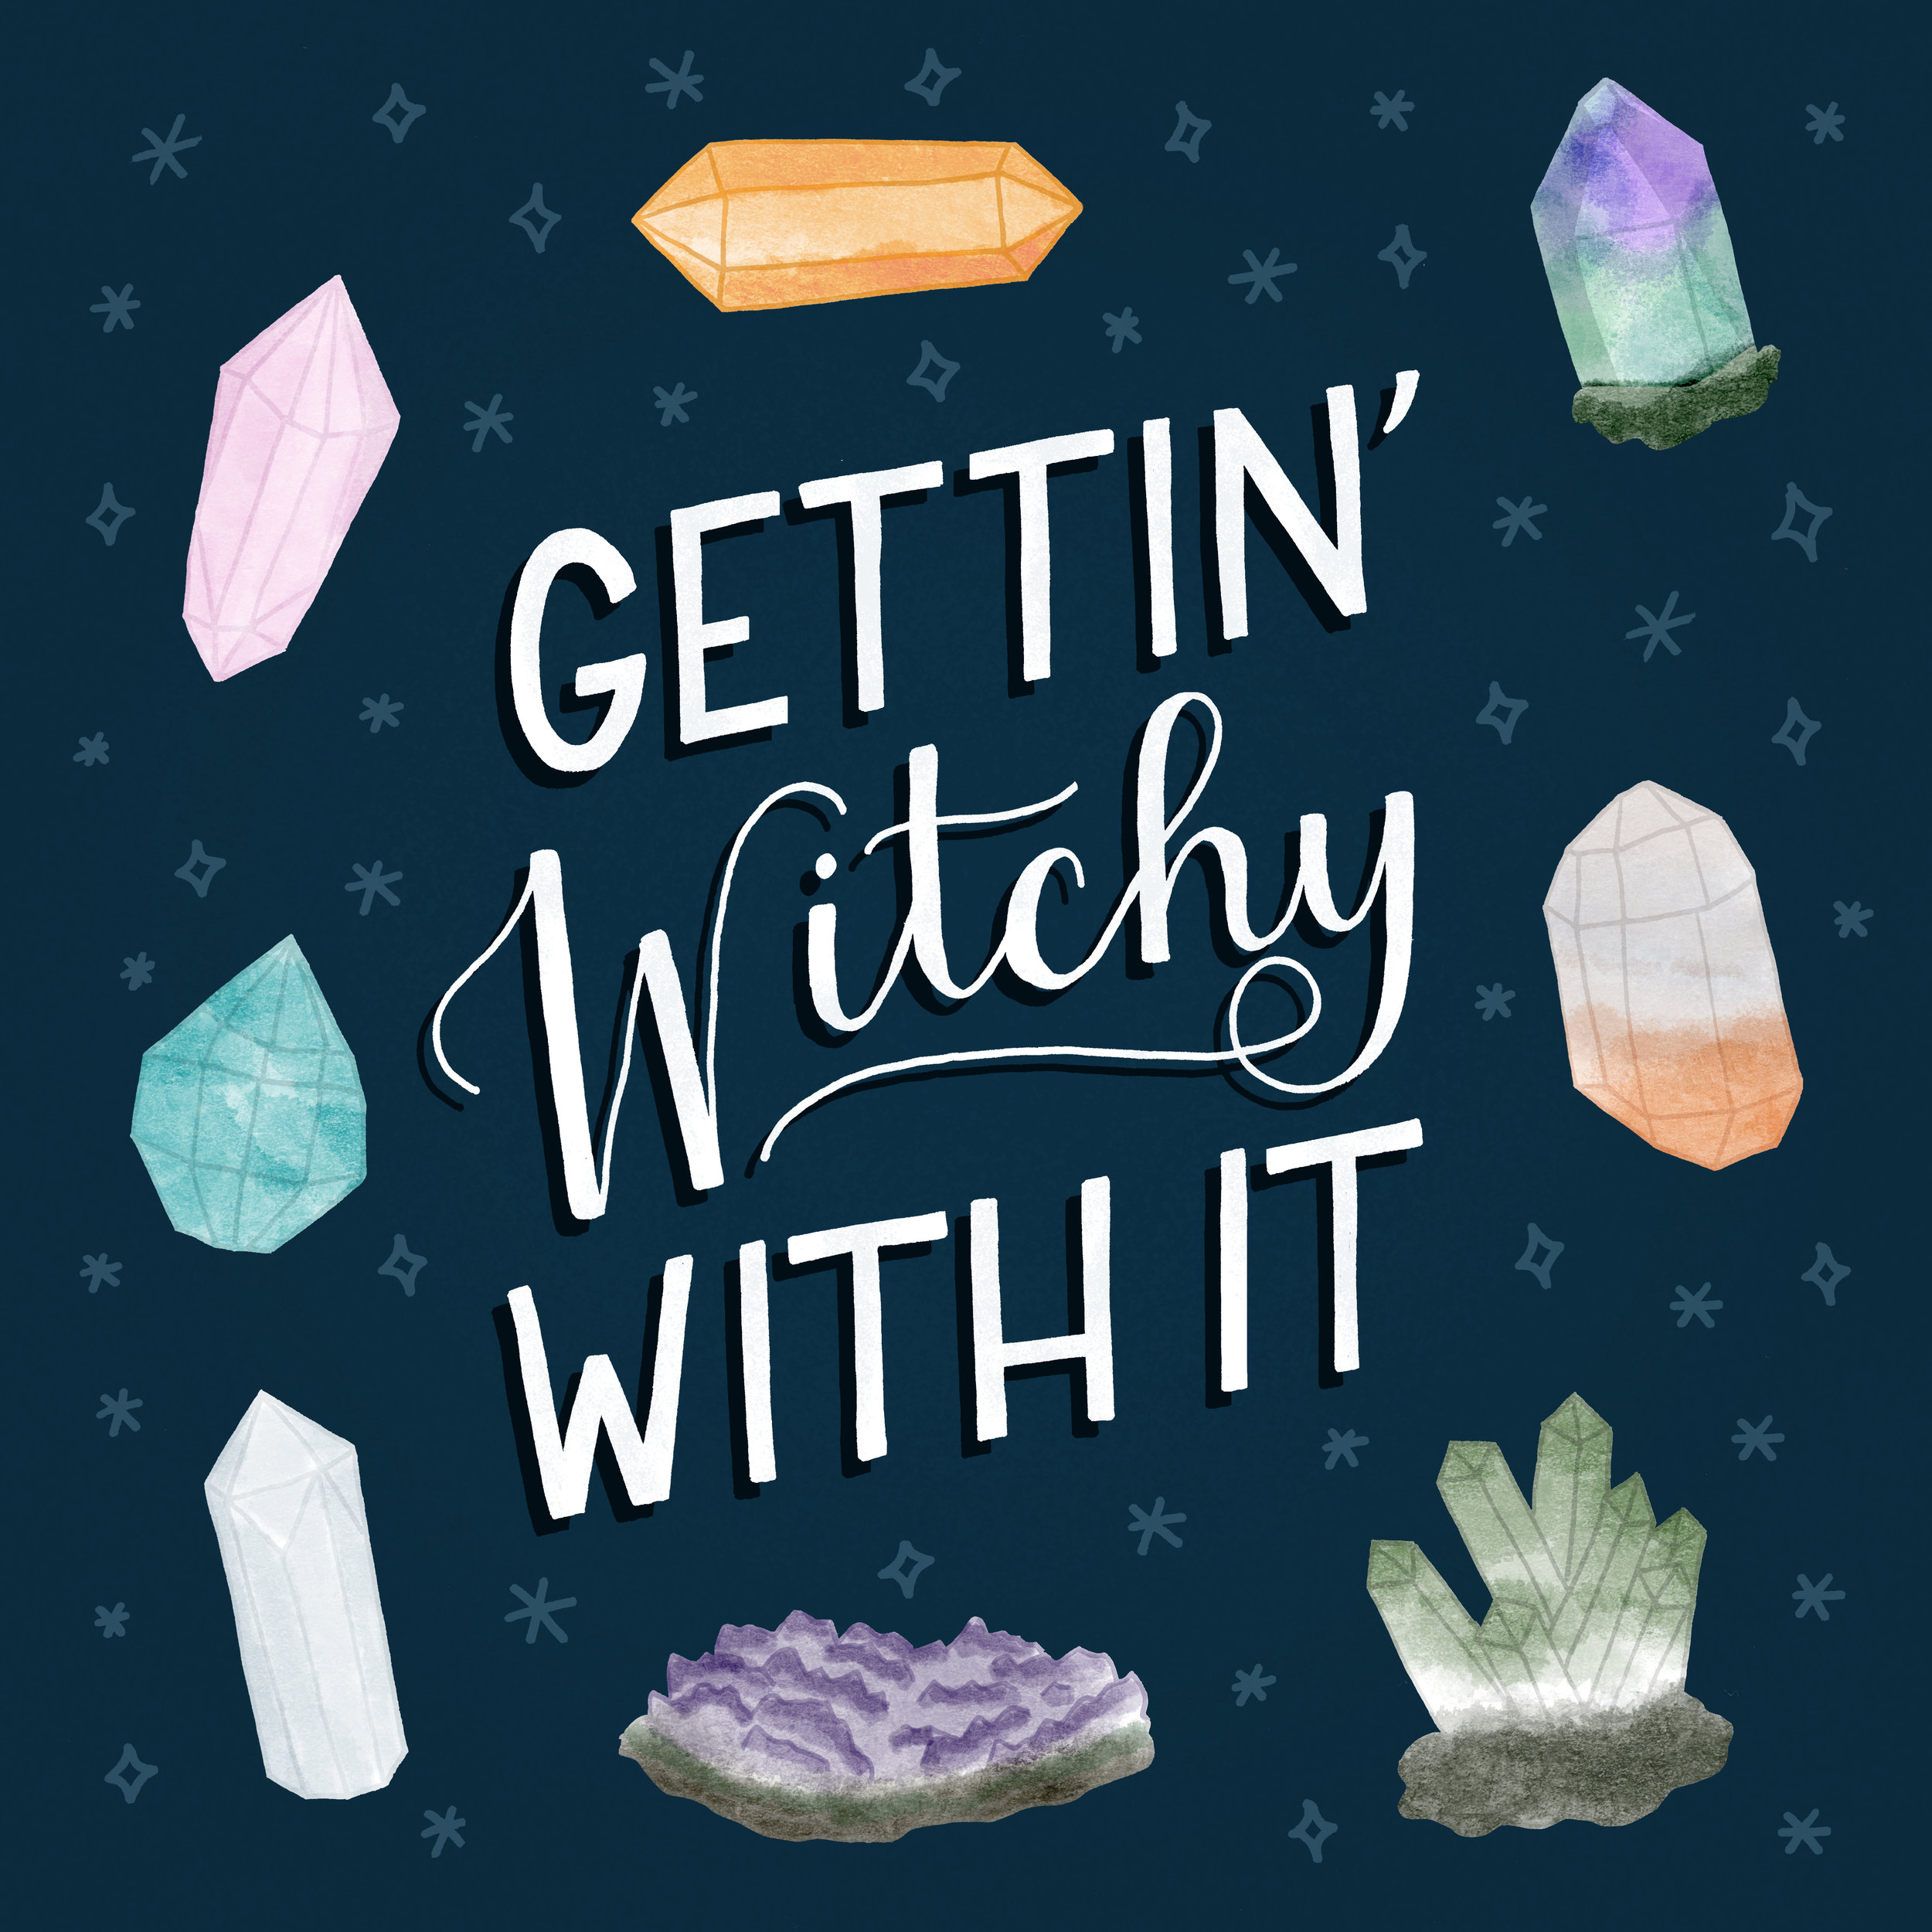 Gettin' Witchy With It